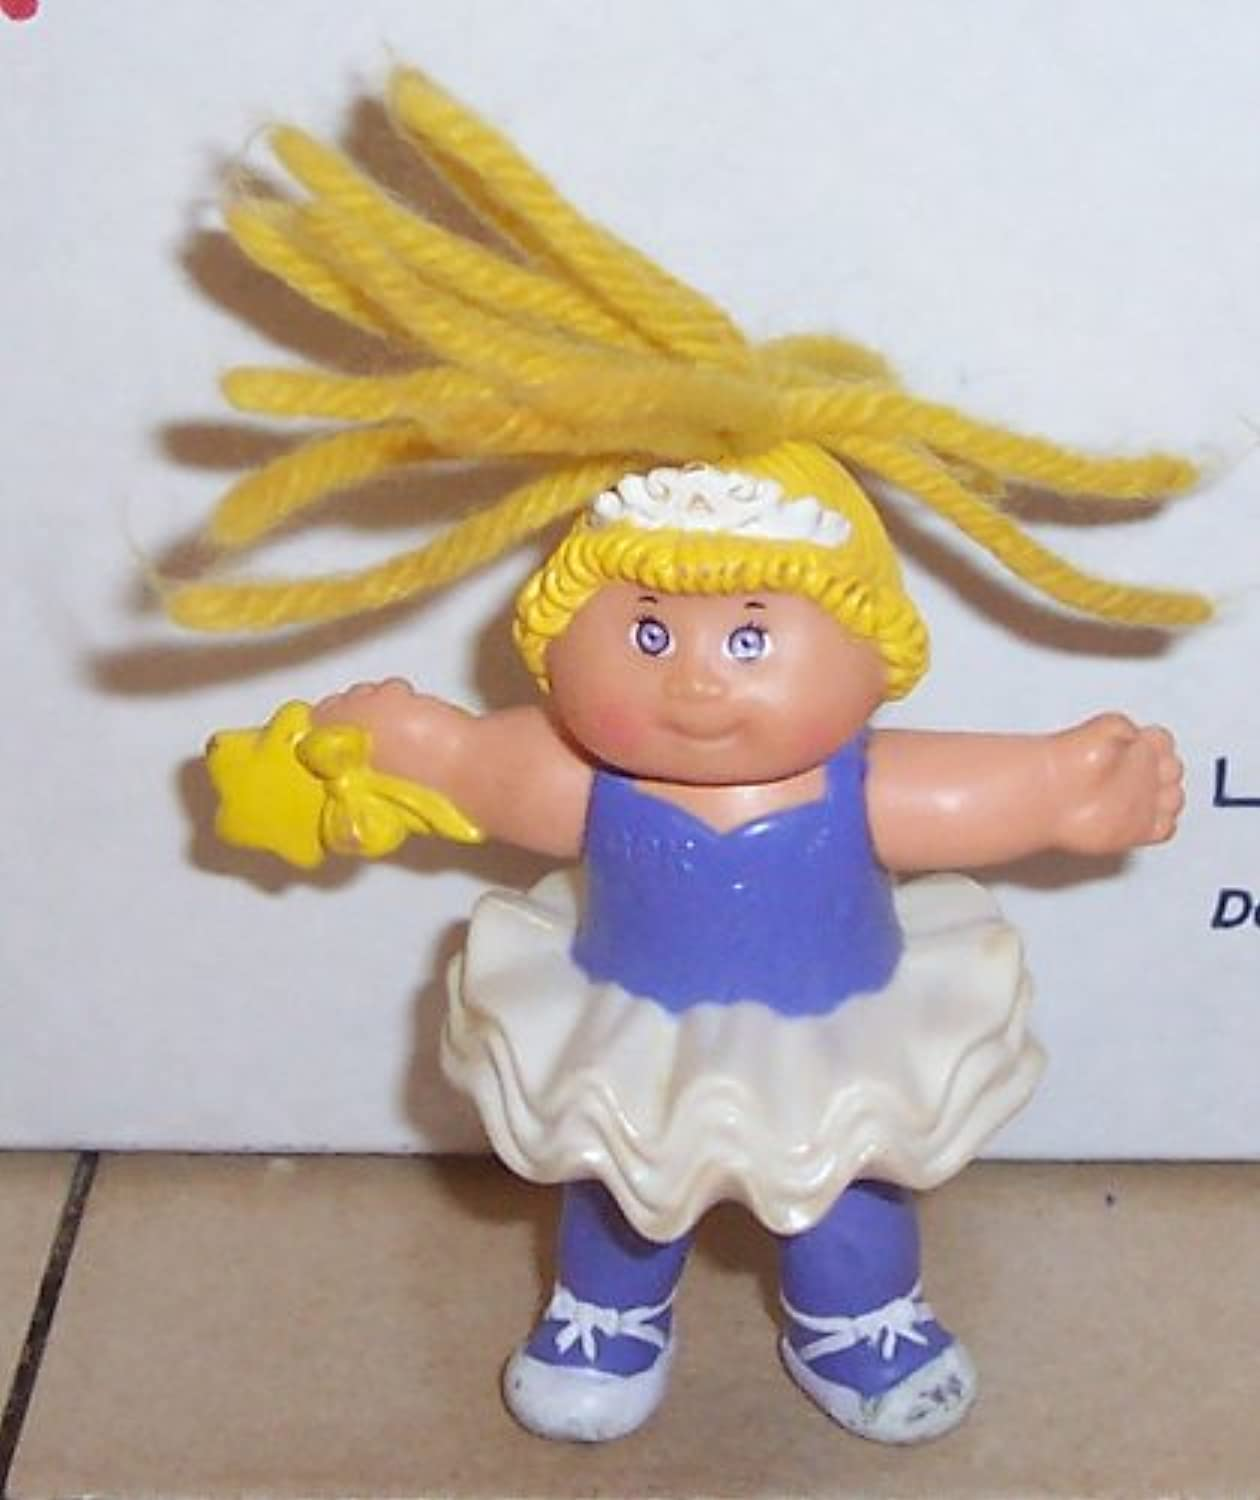 1992 Mcdonalds Cabbage Patch Kids – Ali Marie Happy Meal Toy